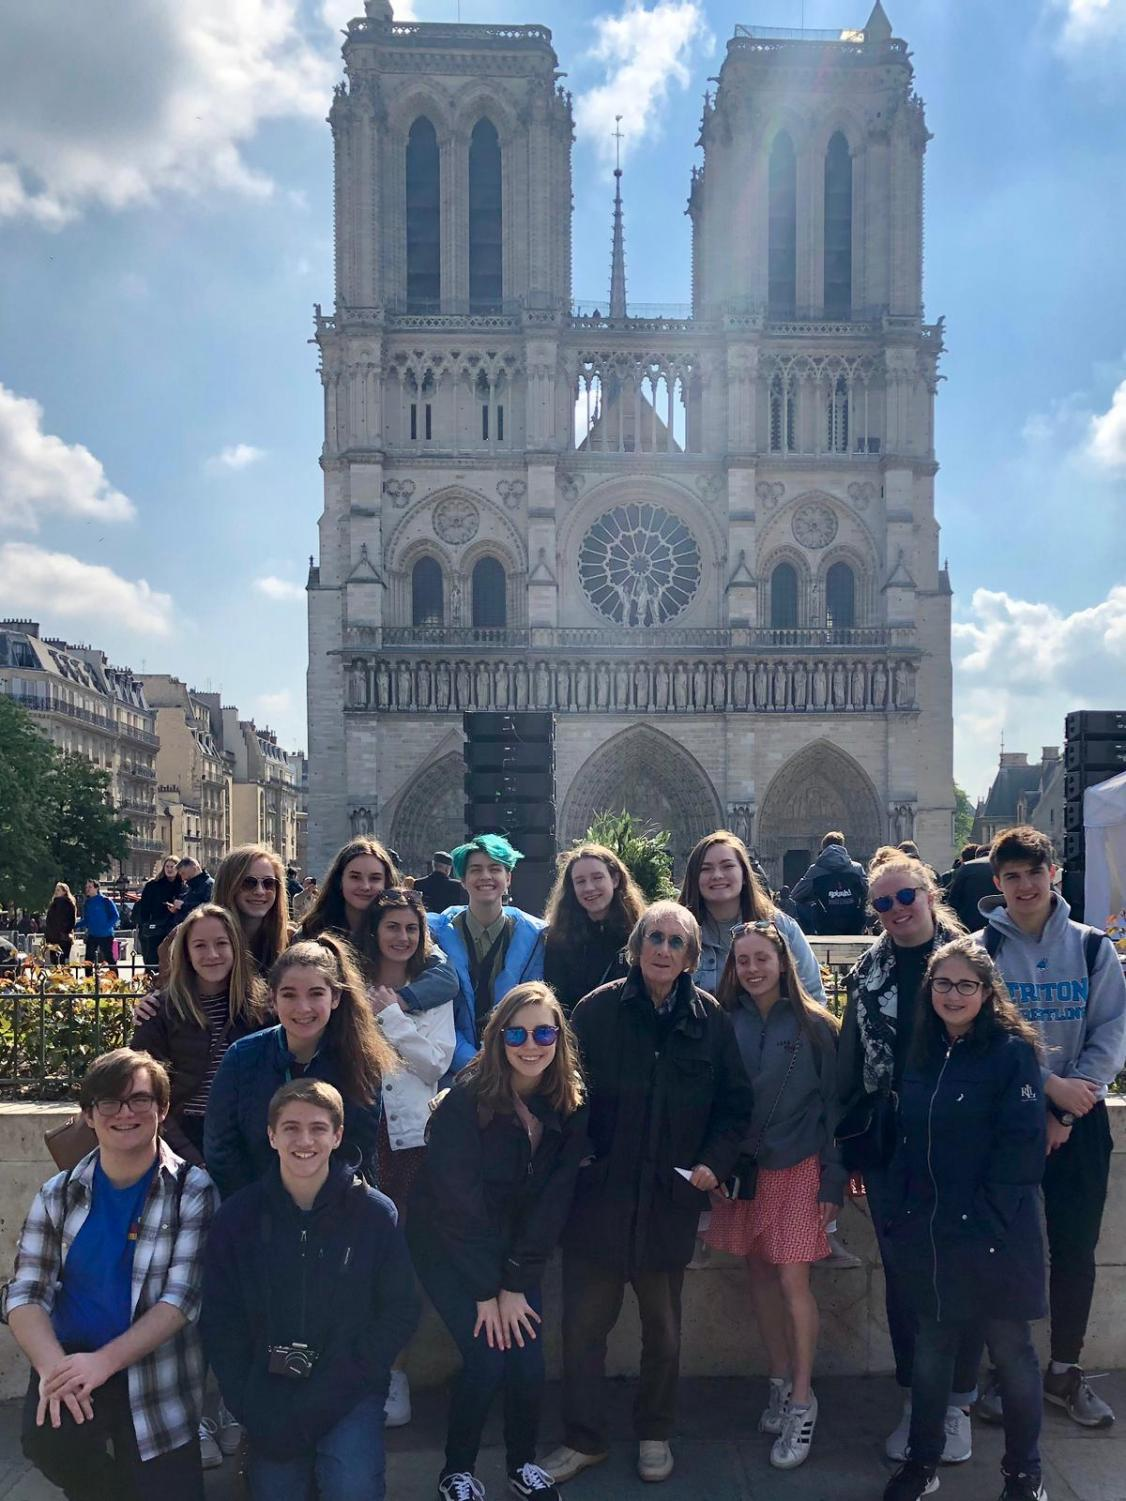 Triton students pose in front of Notre Dame the day before the devastating fire.(Photo courtesy Regina Symonds)